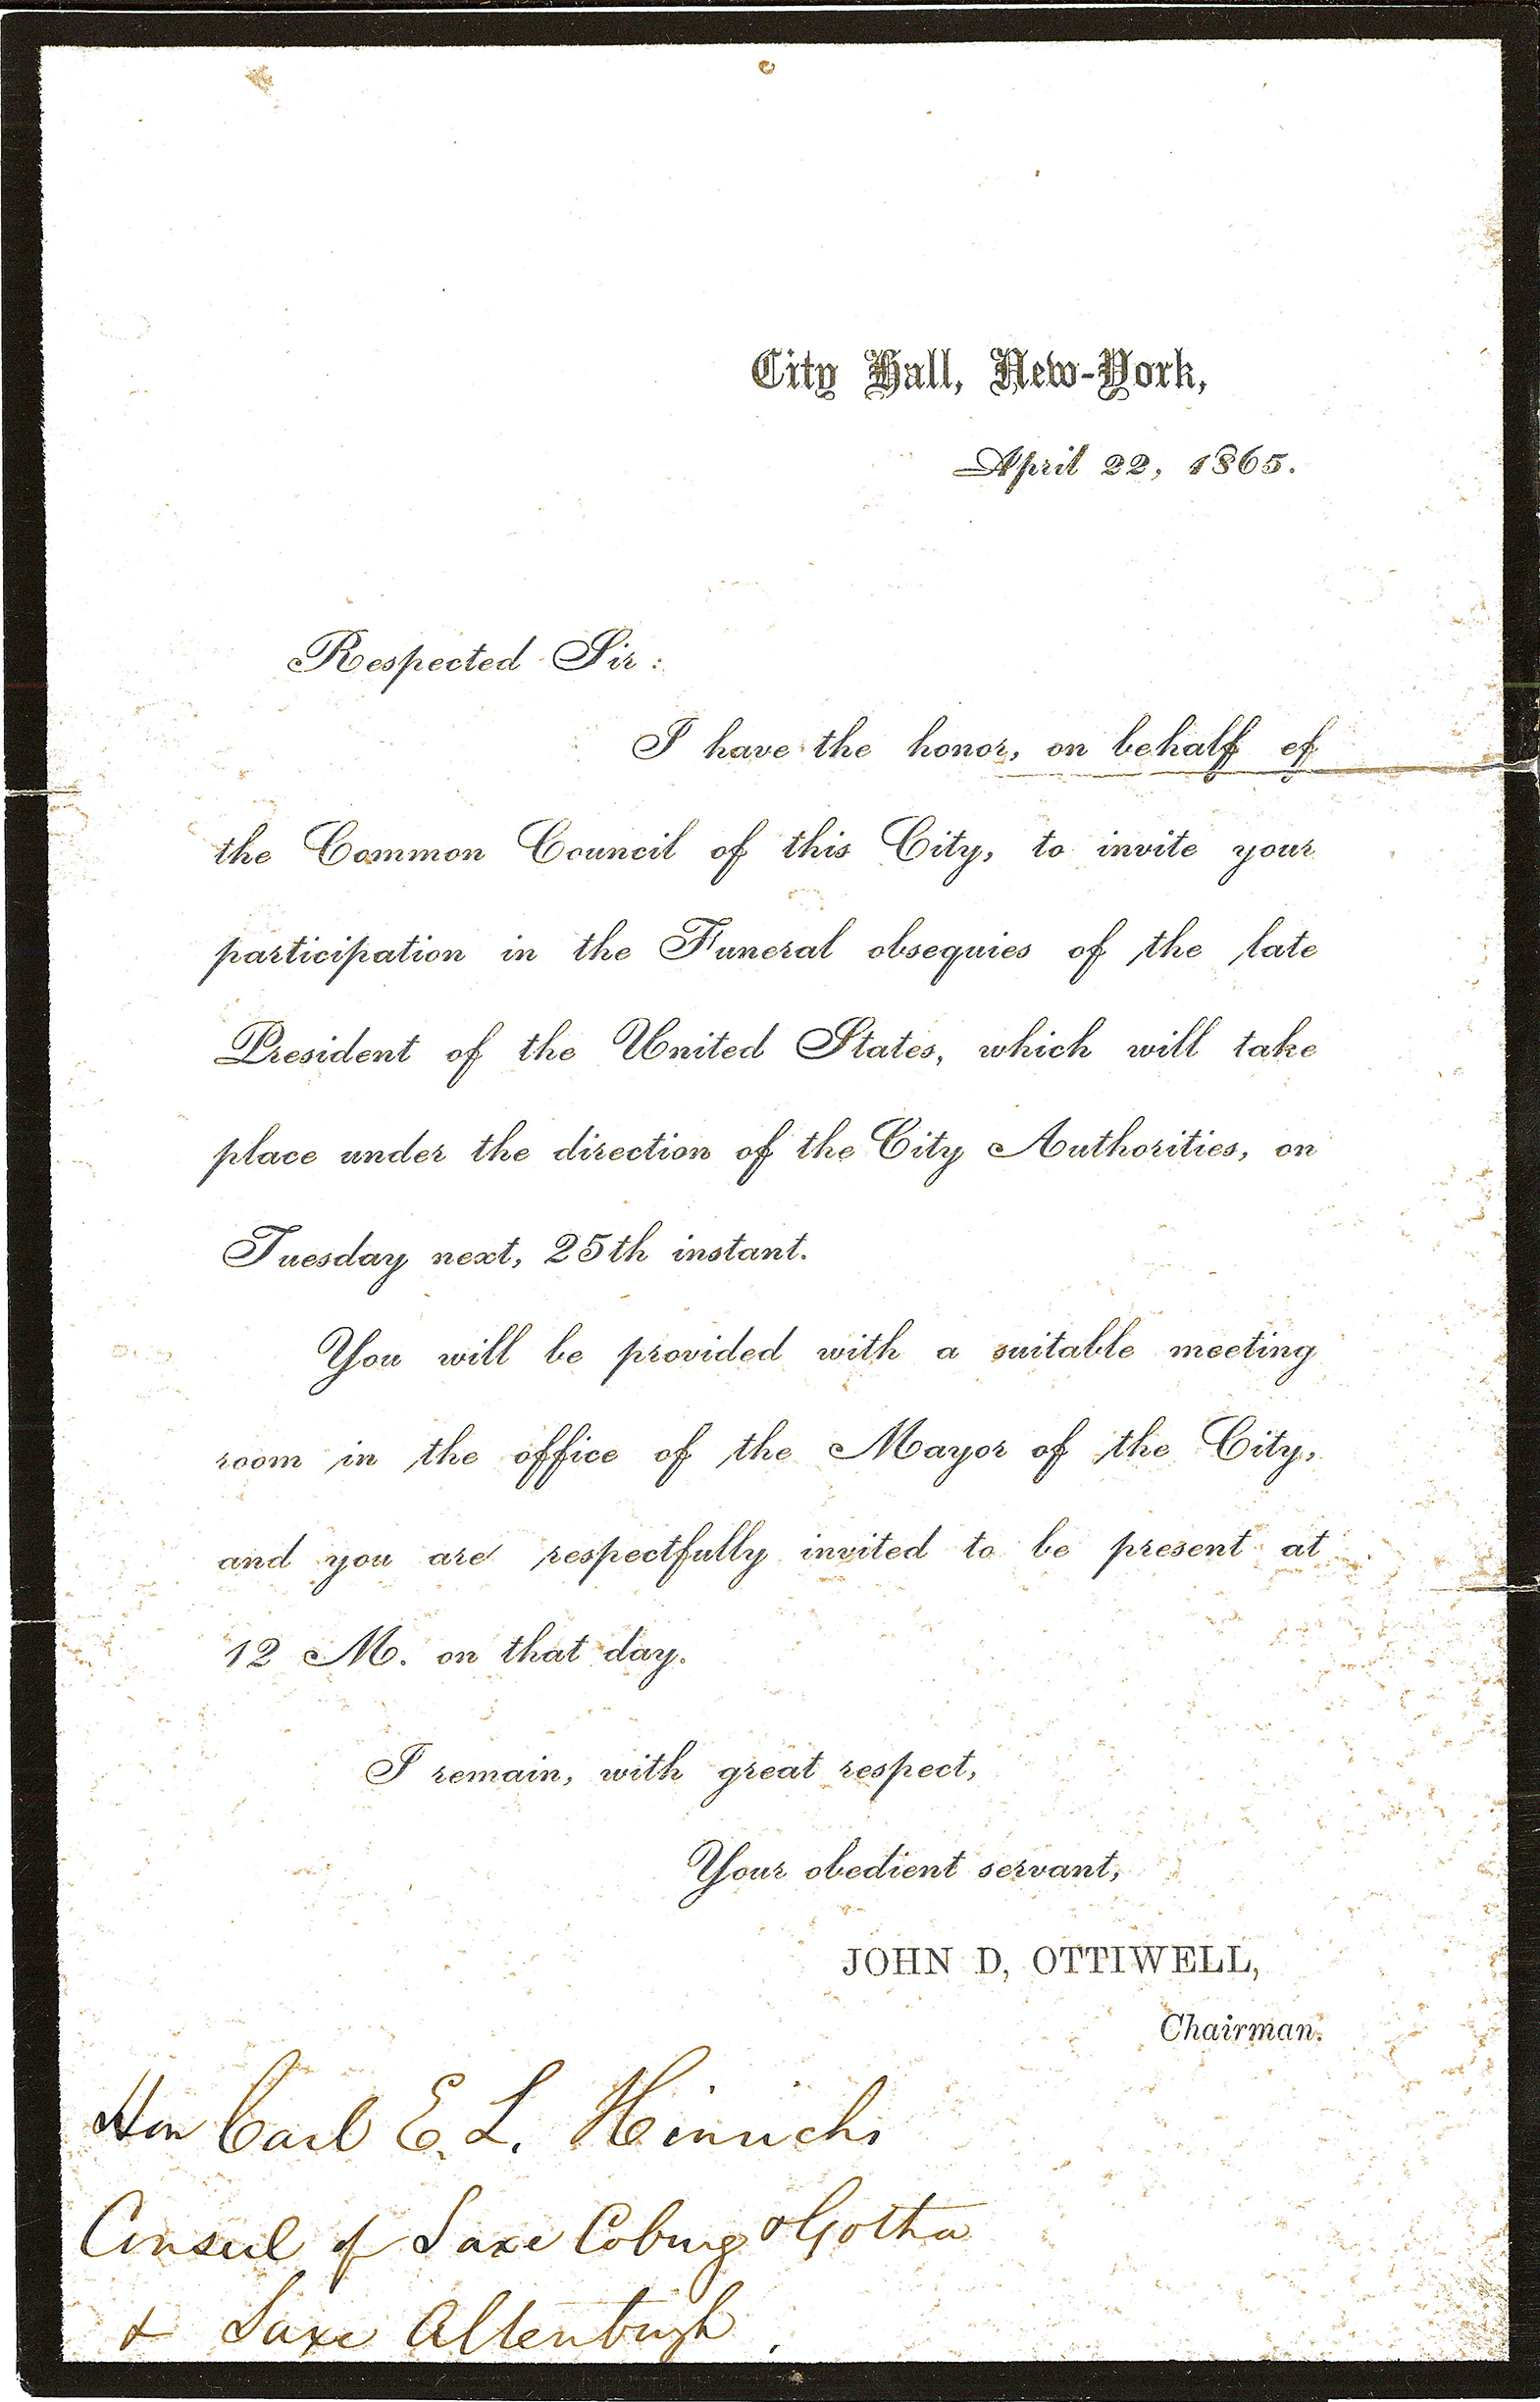 Lincoln funeral train remembering lincoln letter invitation to lincoln funeral new york stopboris Choice Image